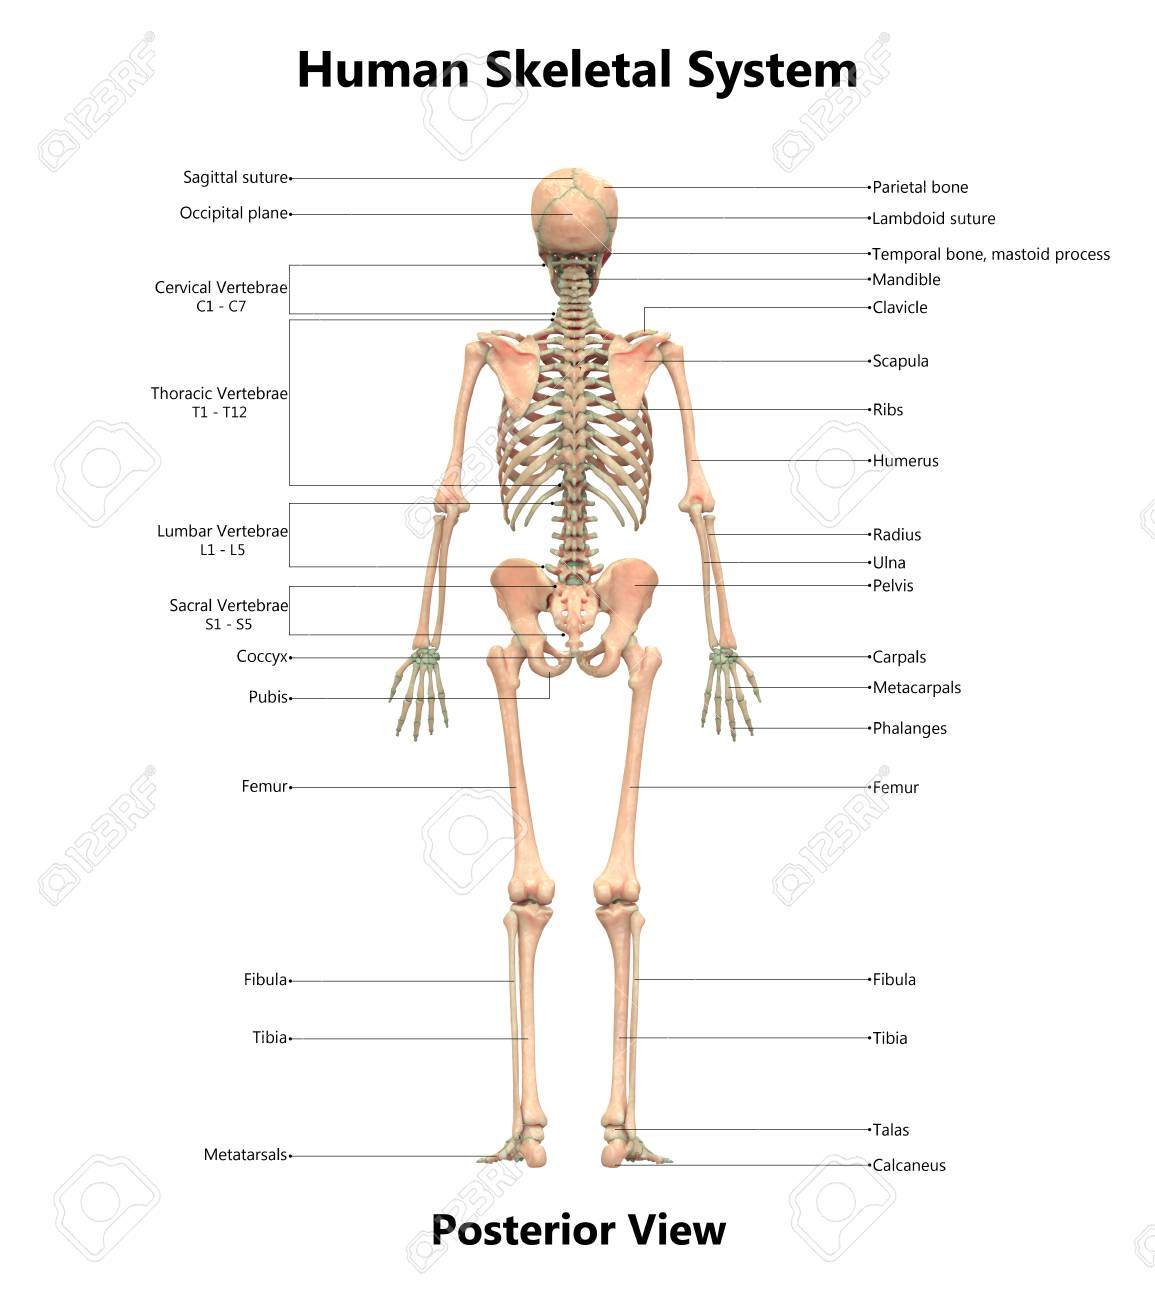 Human Skeleton System Anatomy (Posterior View) Stock Photo, Picture ...